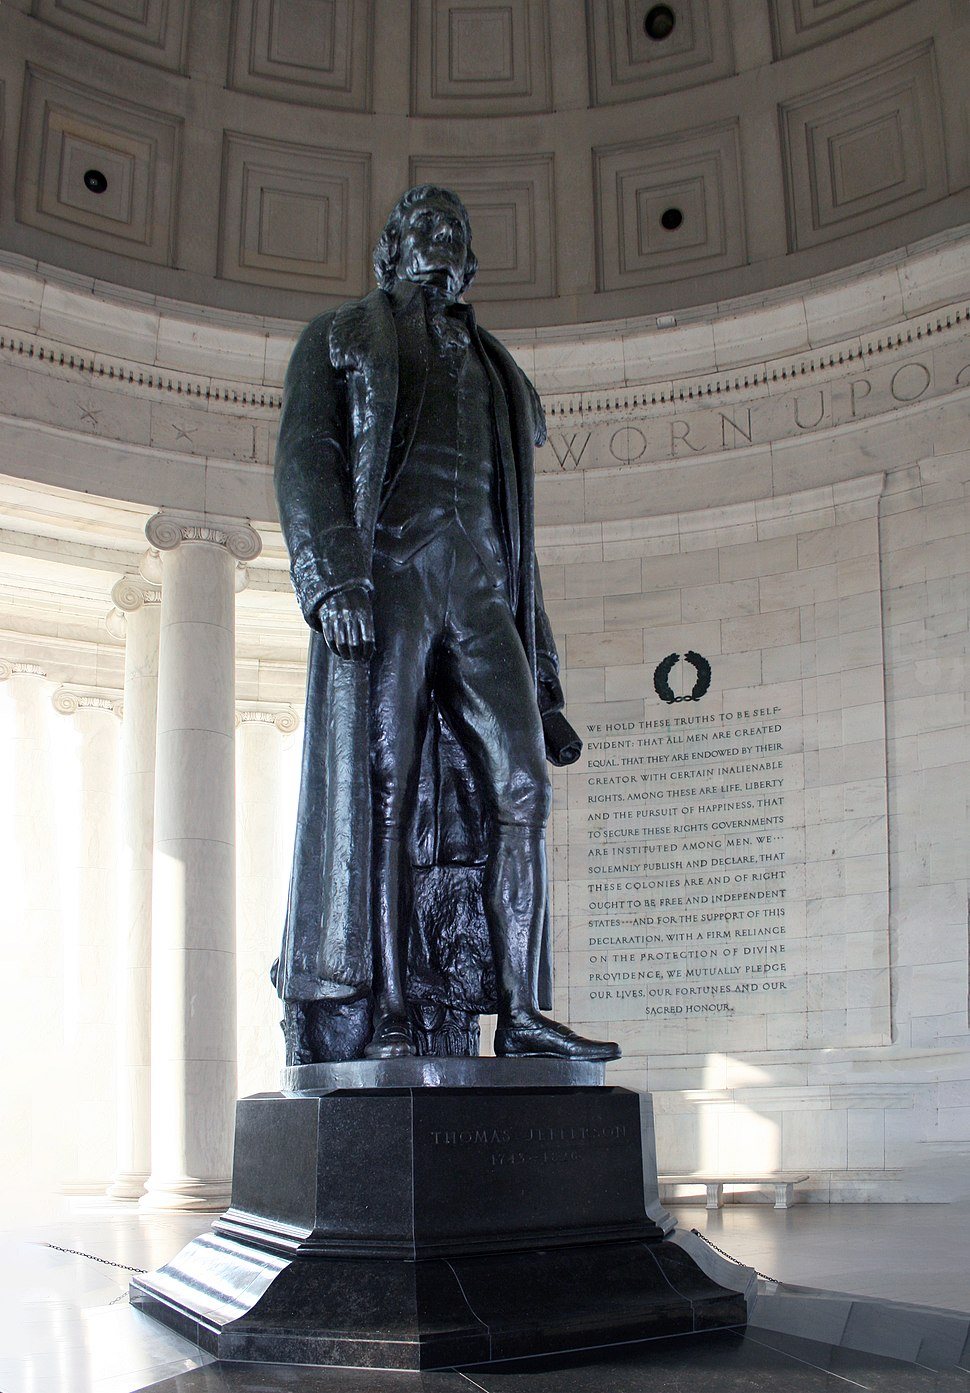 Thomas Jefferson Memorial front